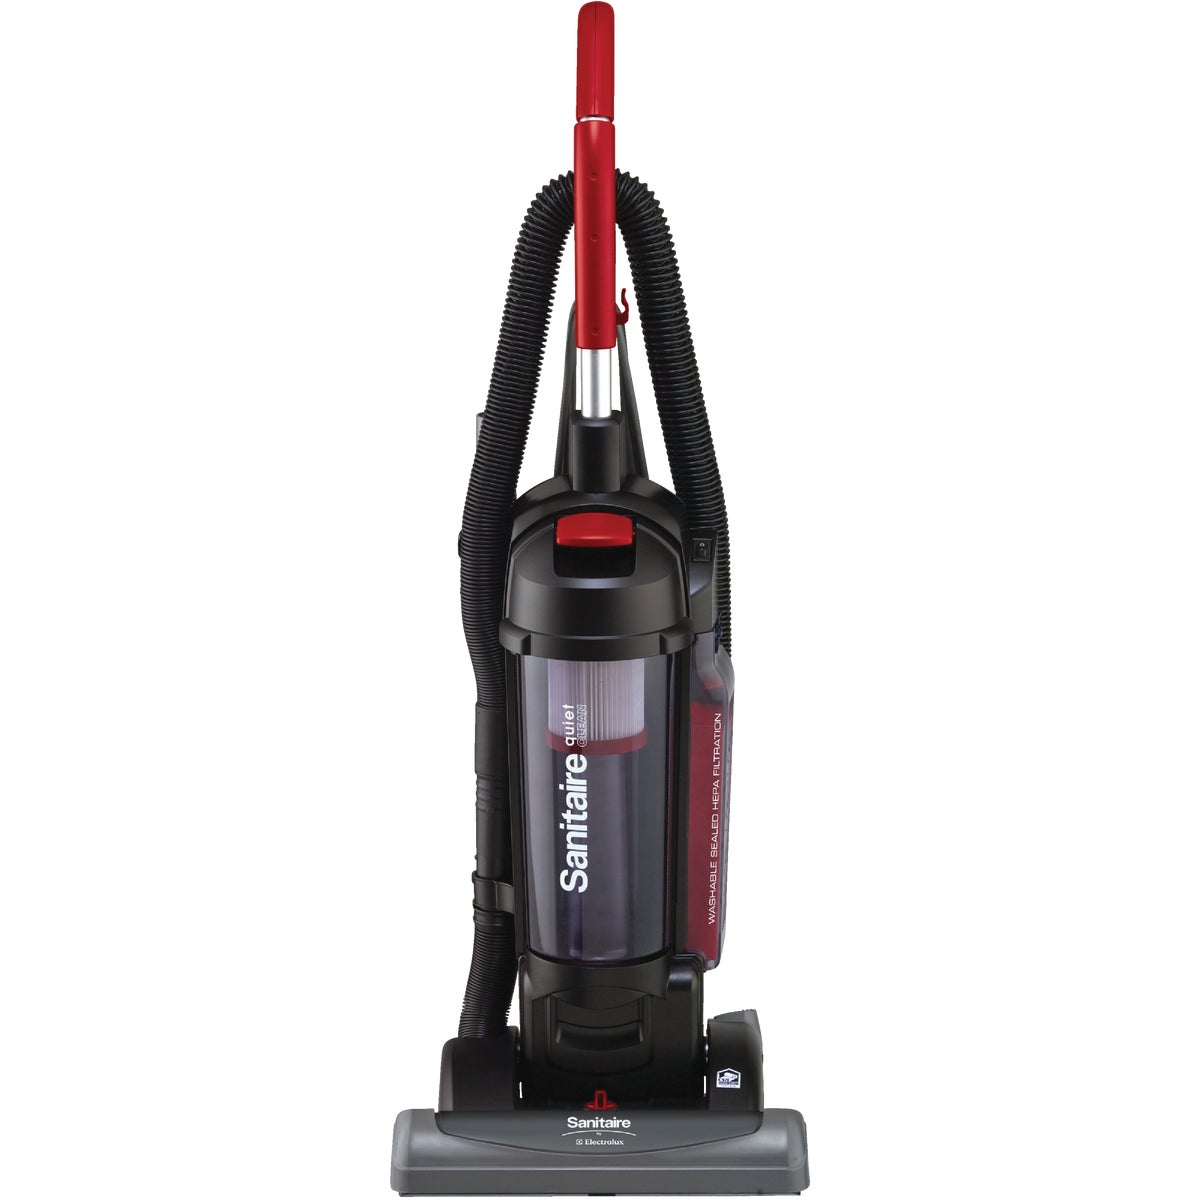 Sanitaire By Electrolux 15 In. Commercial Upright Vacuum Cleaner, SC5845B